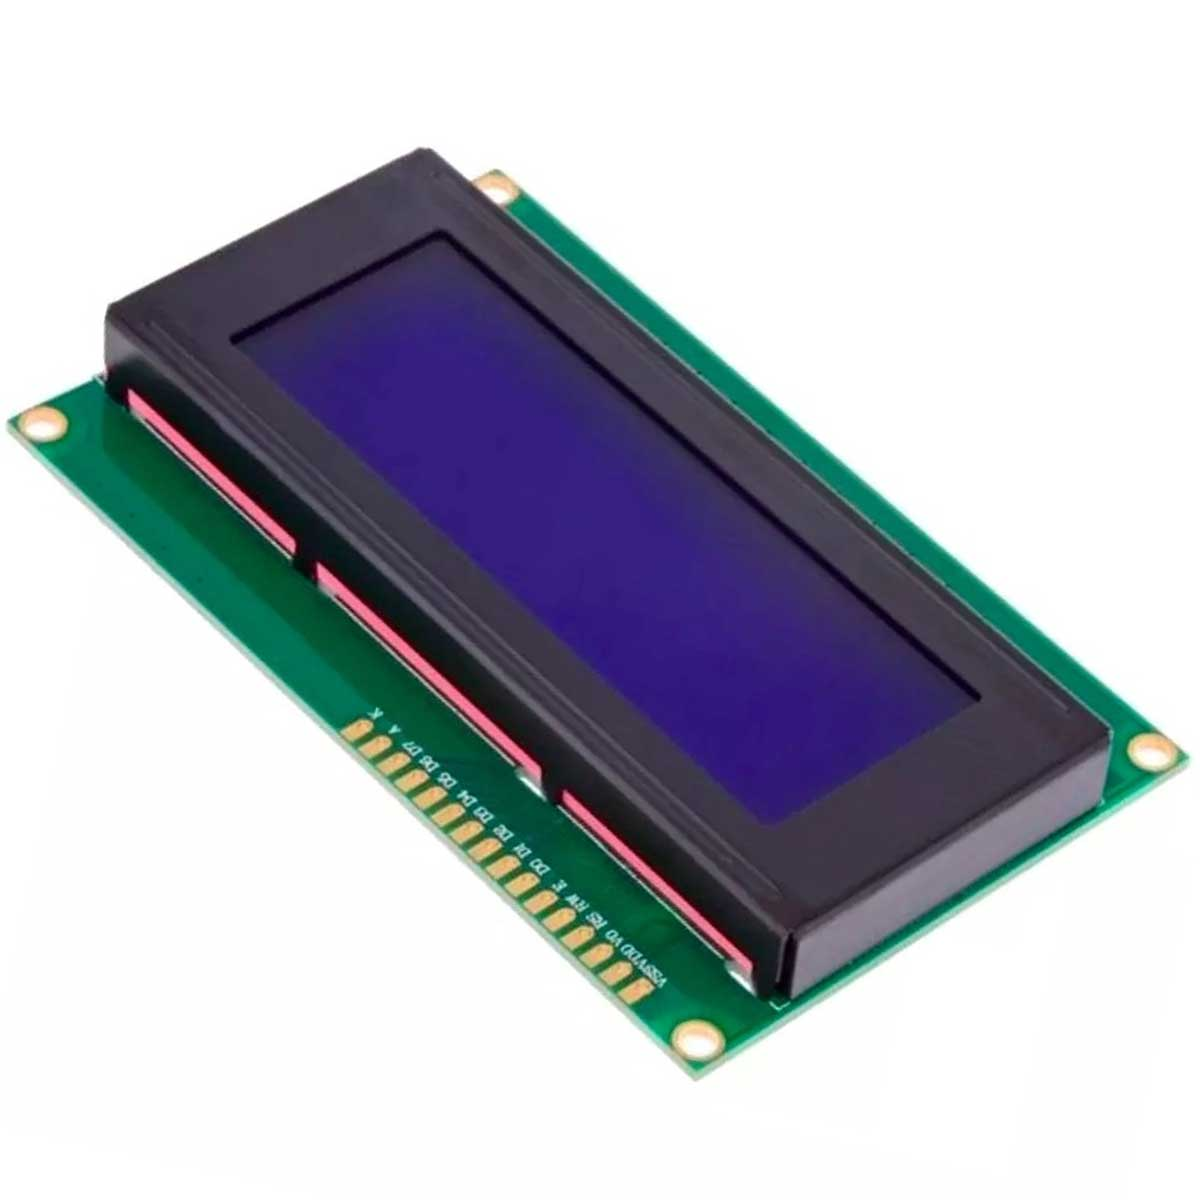 Display LCD 20x4 Backlight Azul 20x04 2004 20 x 04